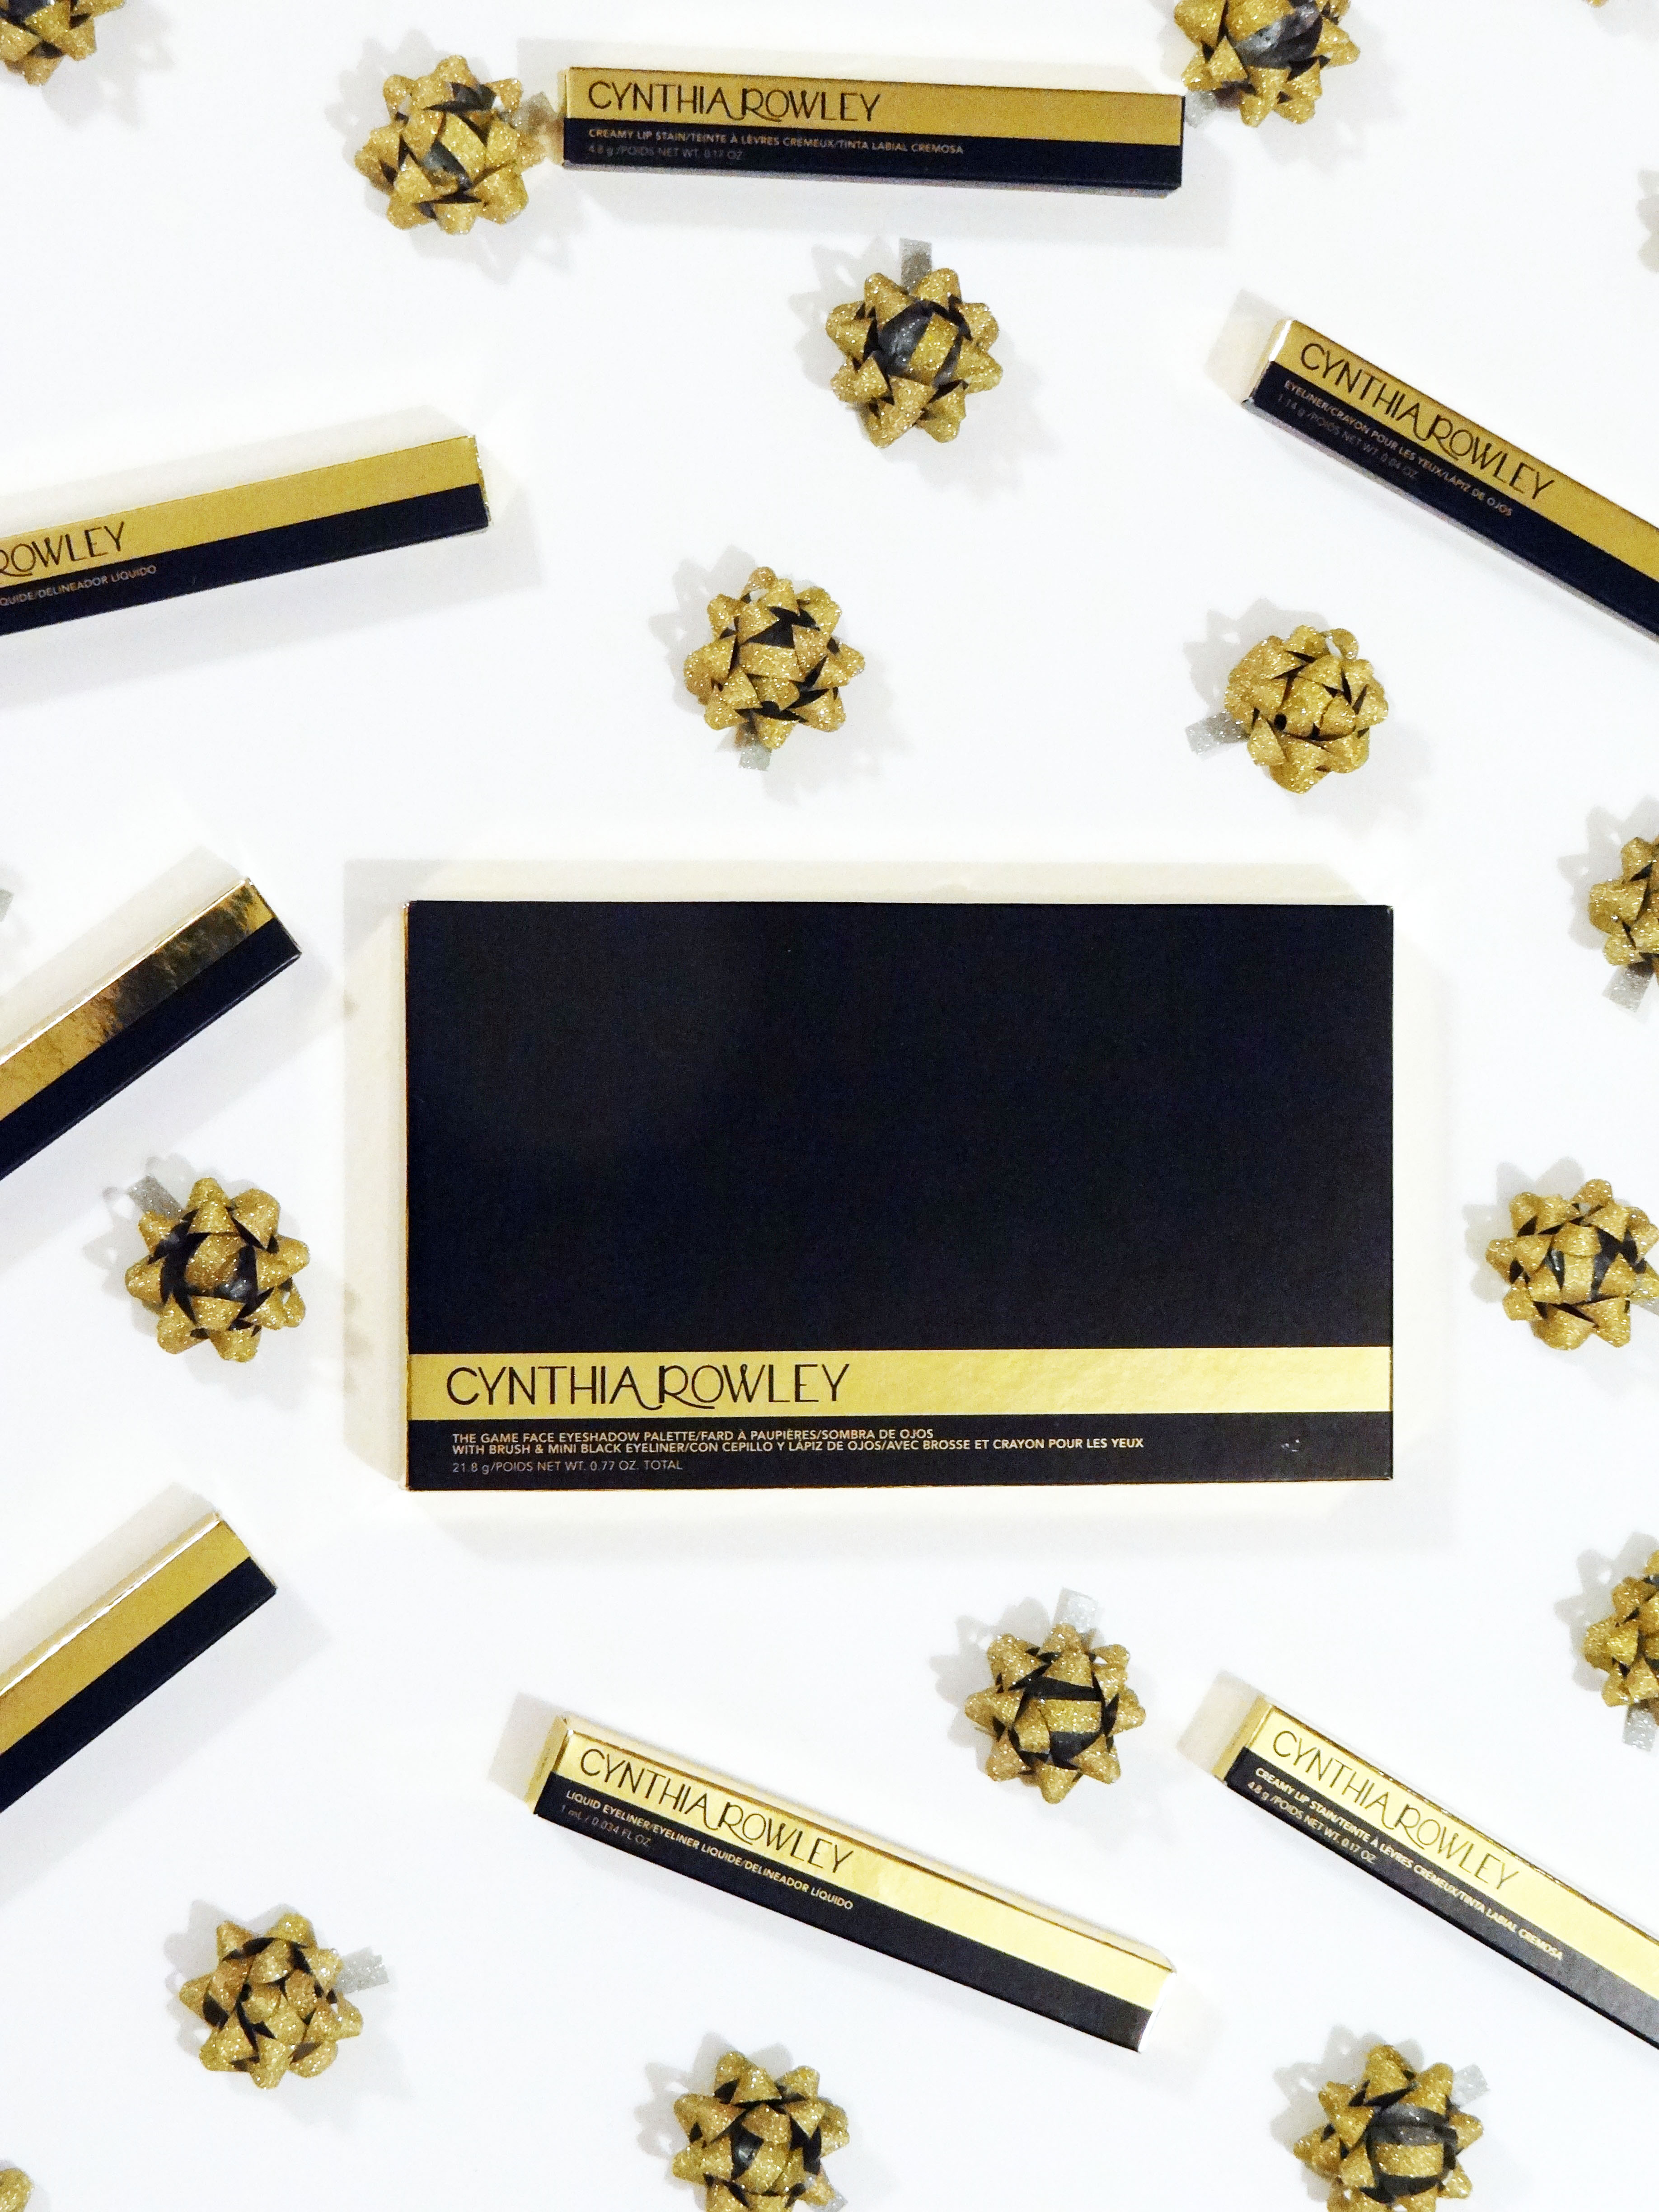 caitlin rowley makeup, holidays, christmas, gift ideas, holiday gifts, christmas gift ideas, gifts for her, Beauty, Make up, subscription box, birchbox, beauty box